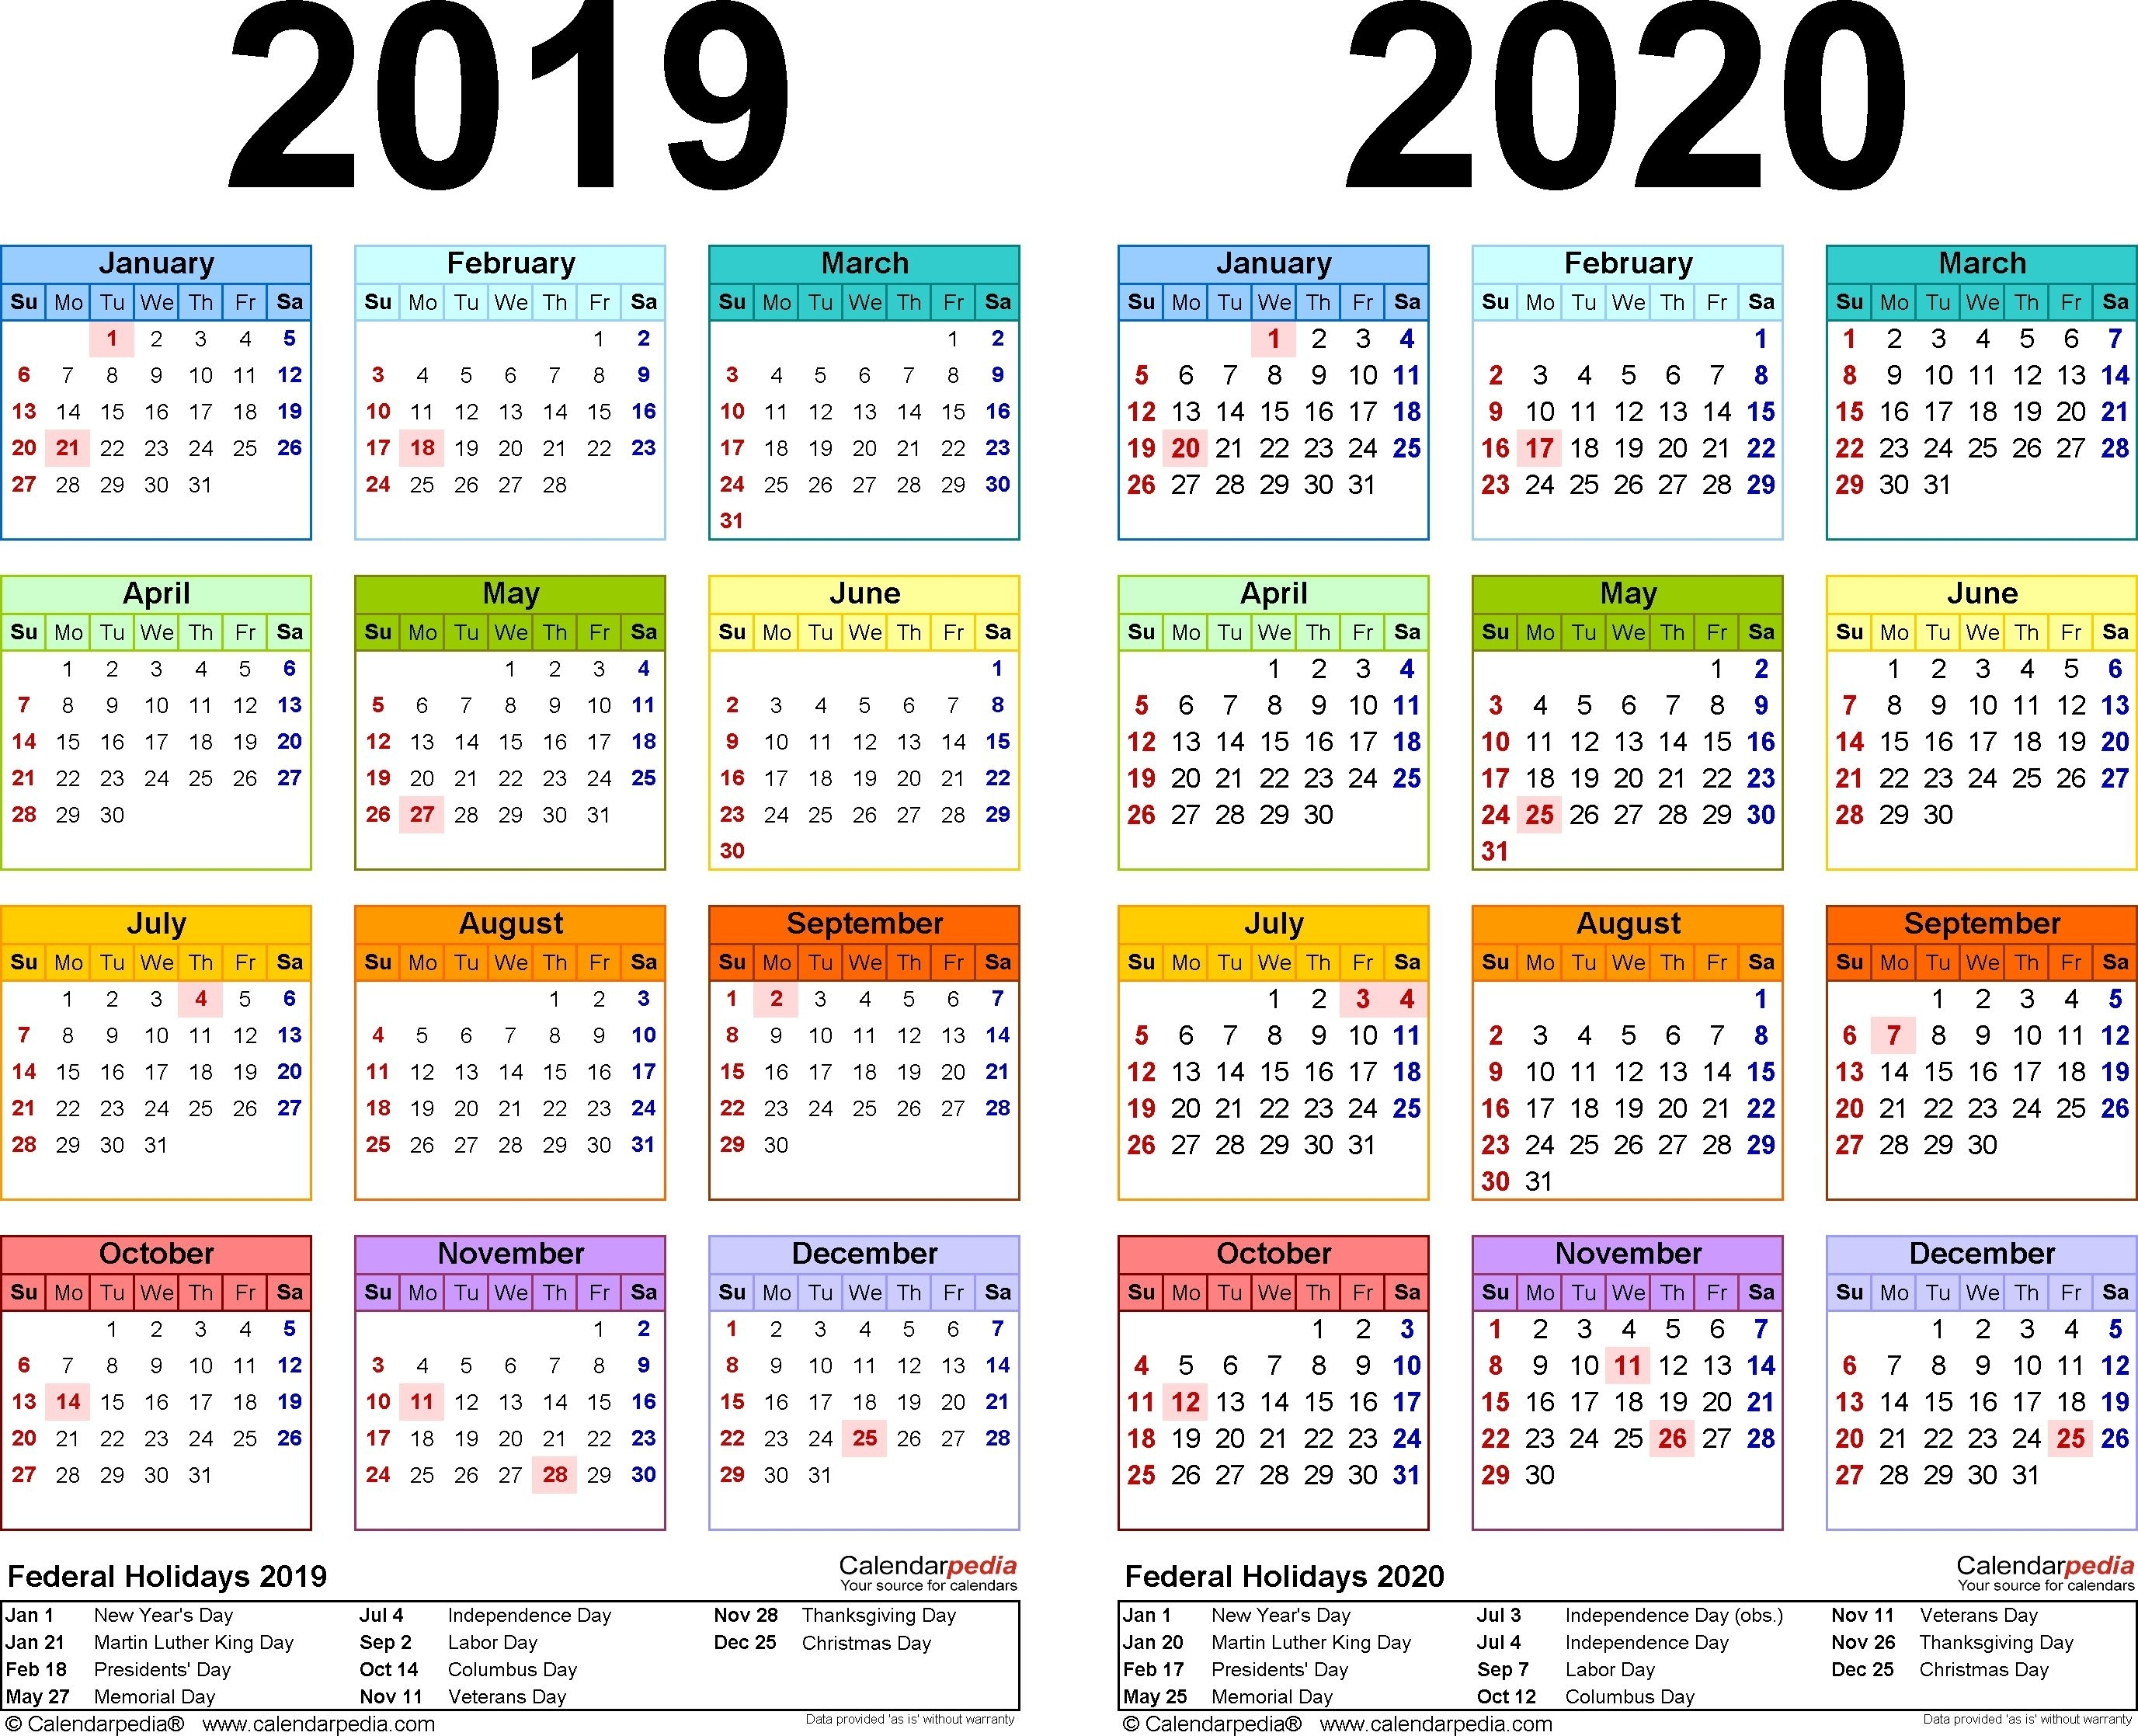 2019-2020 Calendar - Free Printable Two-Year Excel Calendars